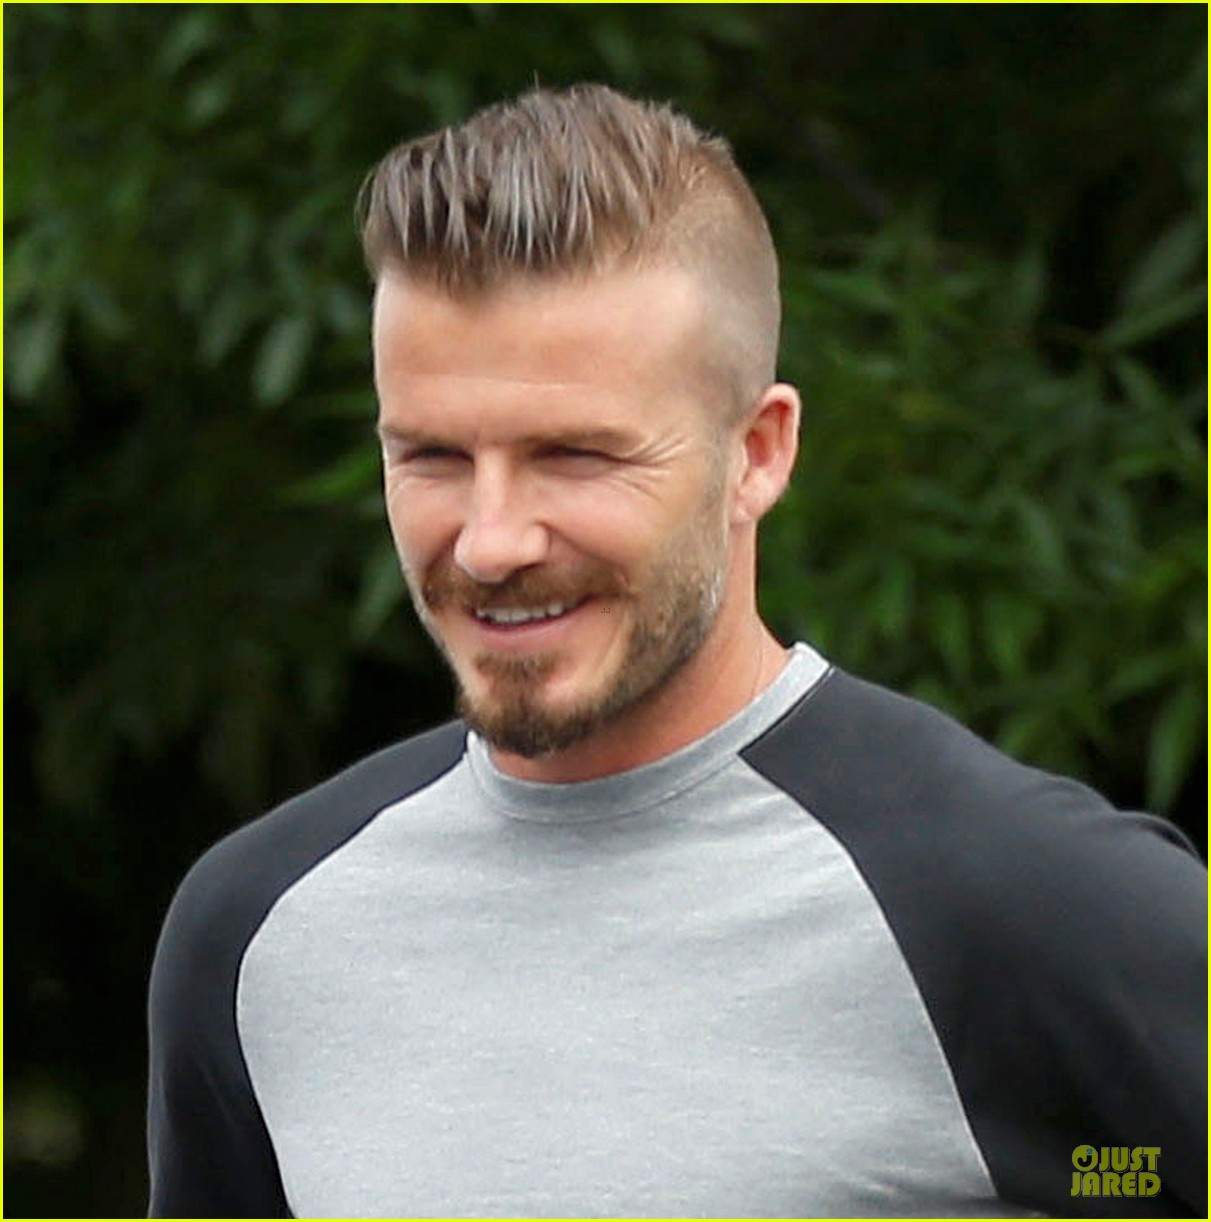 David Beckham Hairstyles Photos